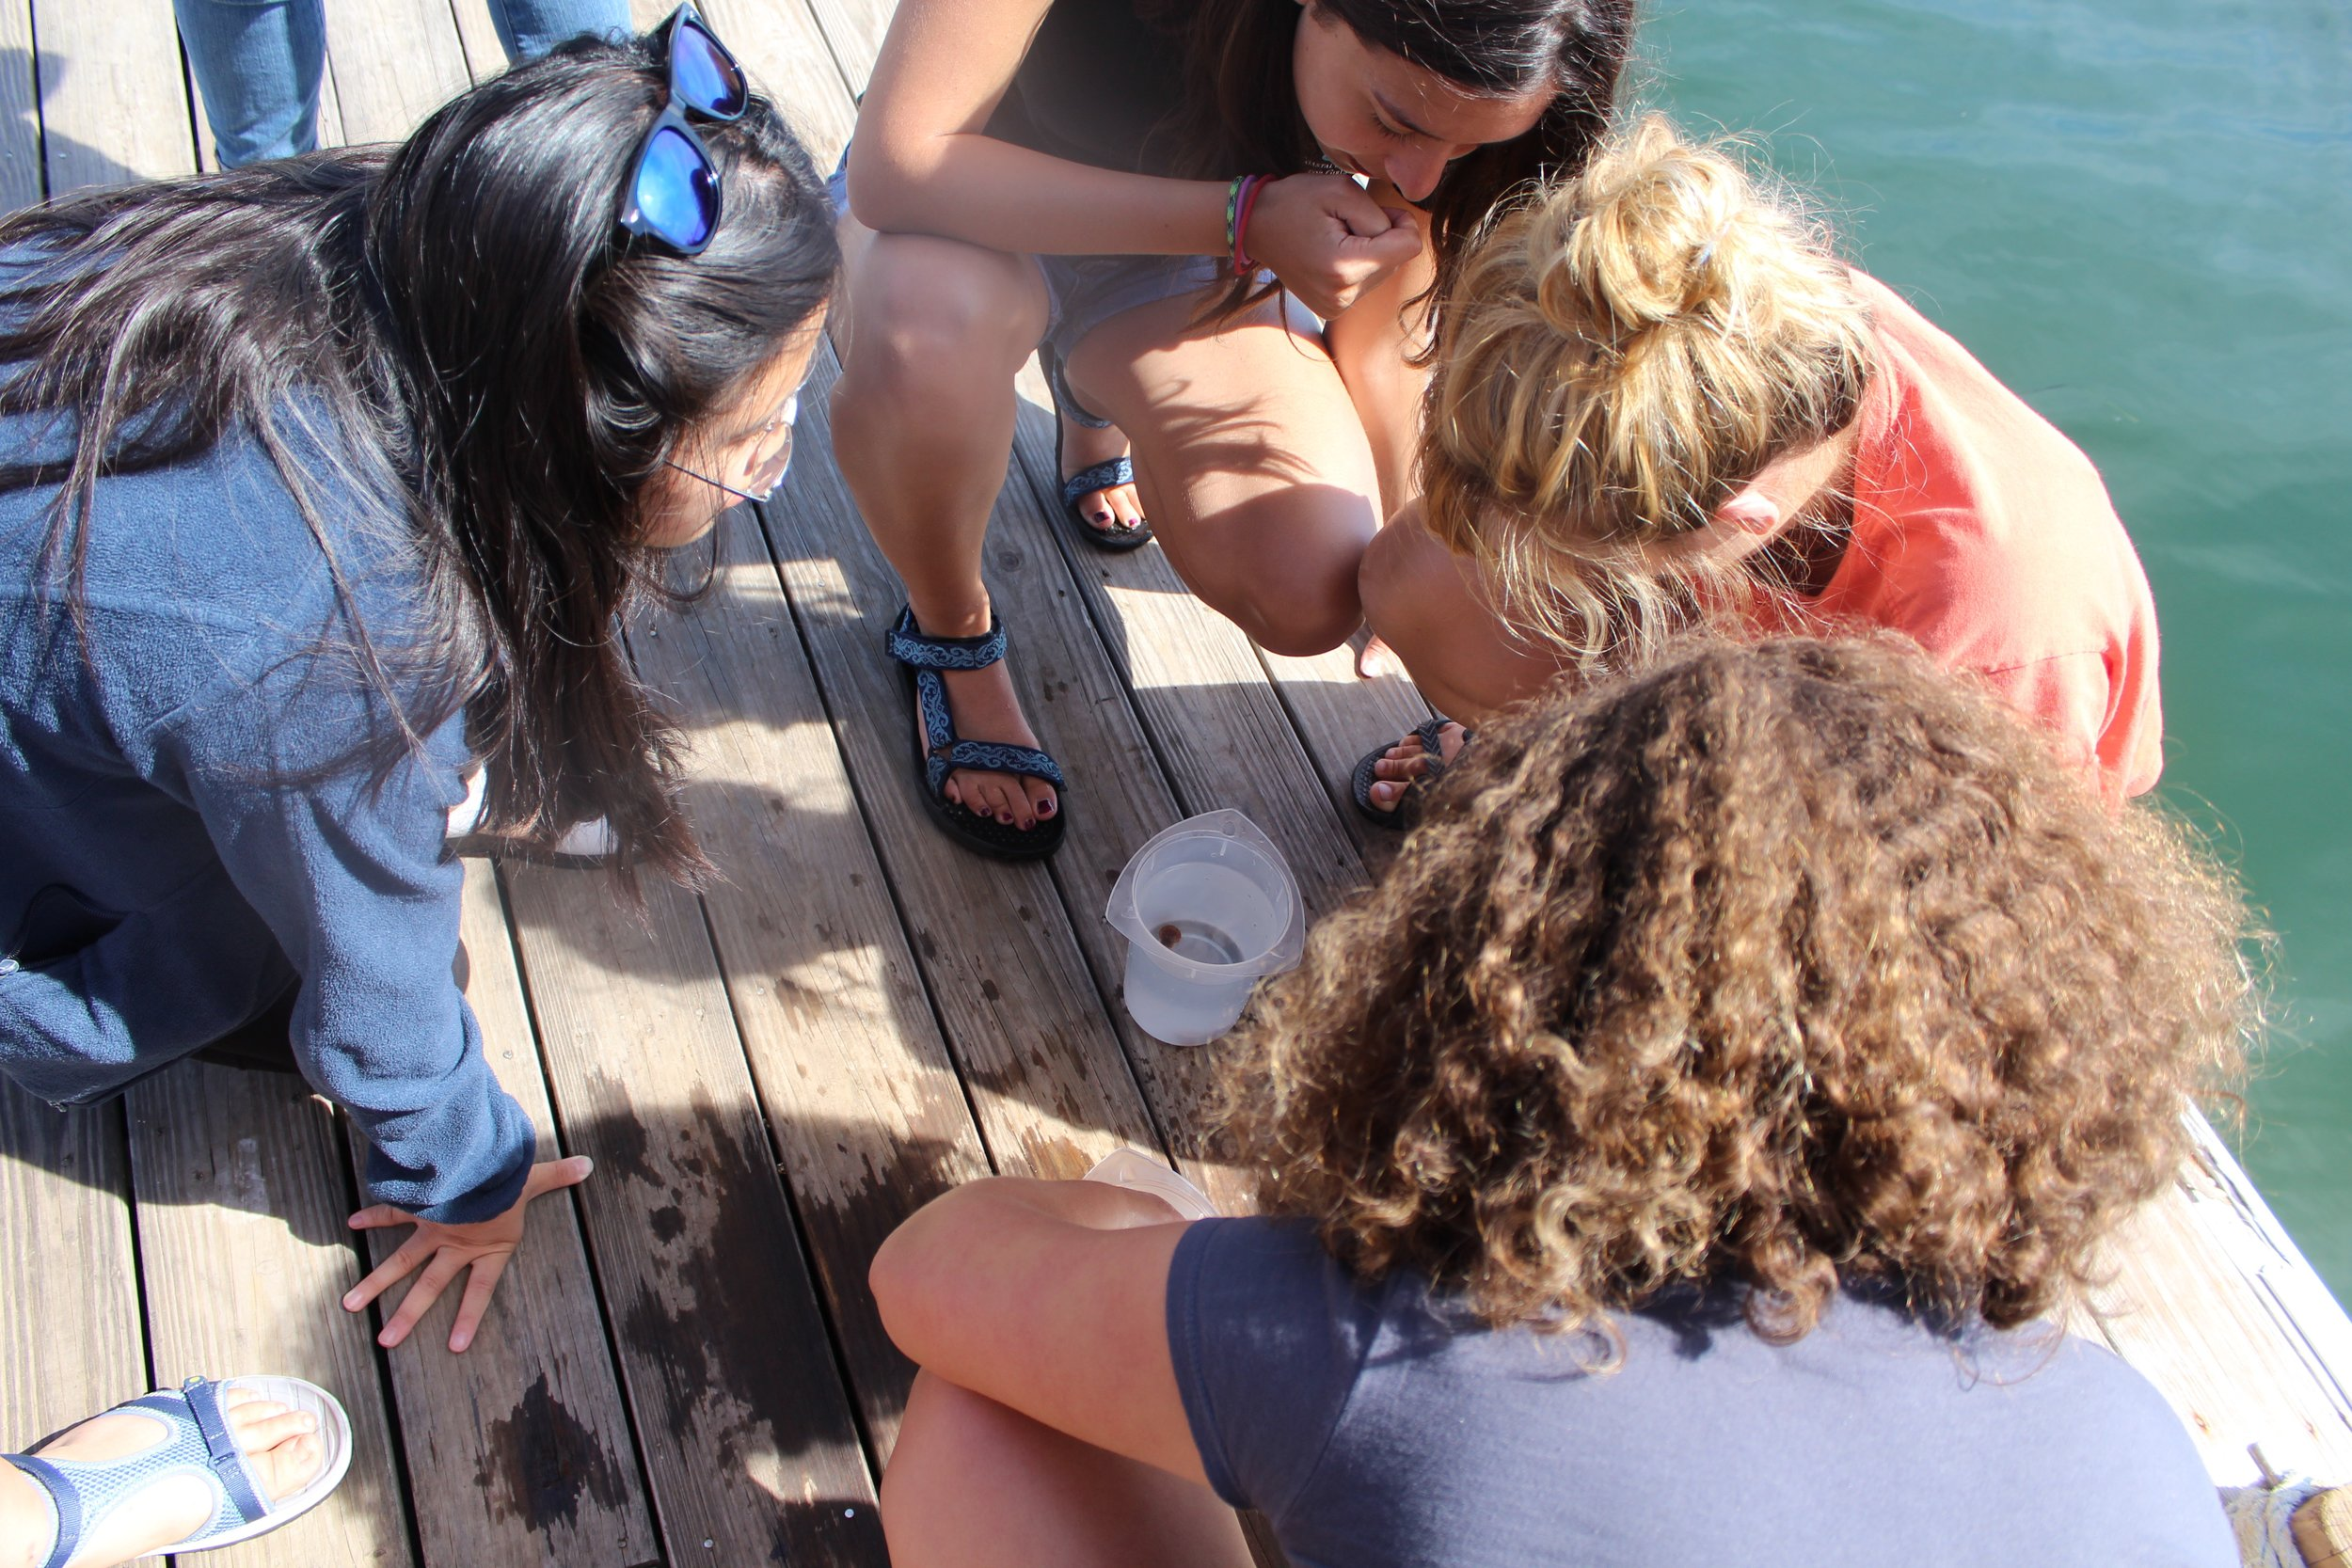 Looking at baby scallops on the dock